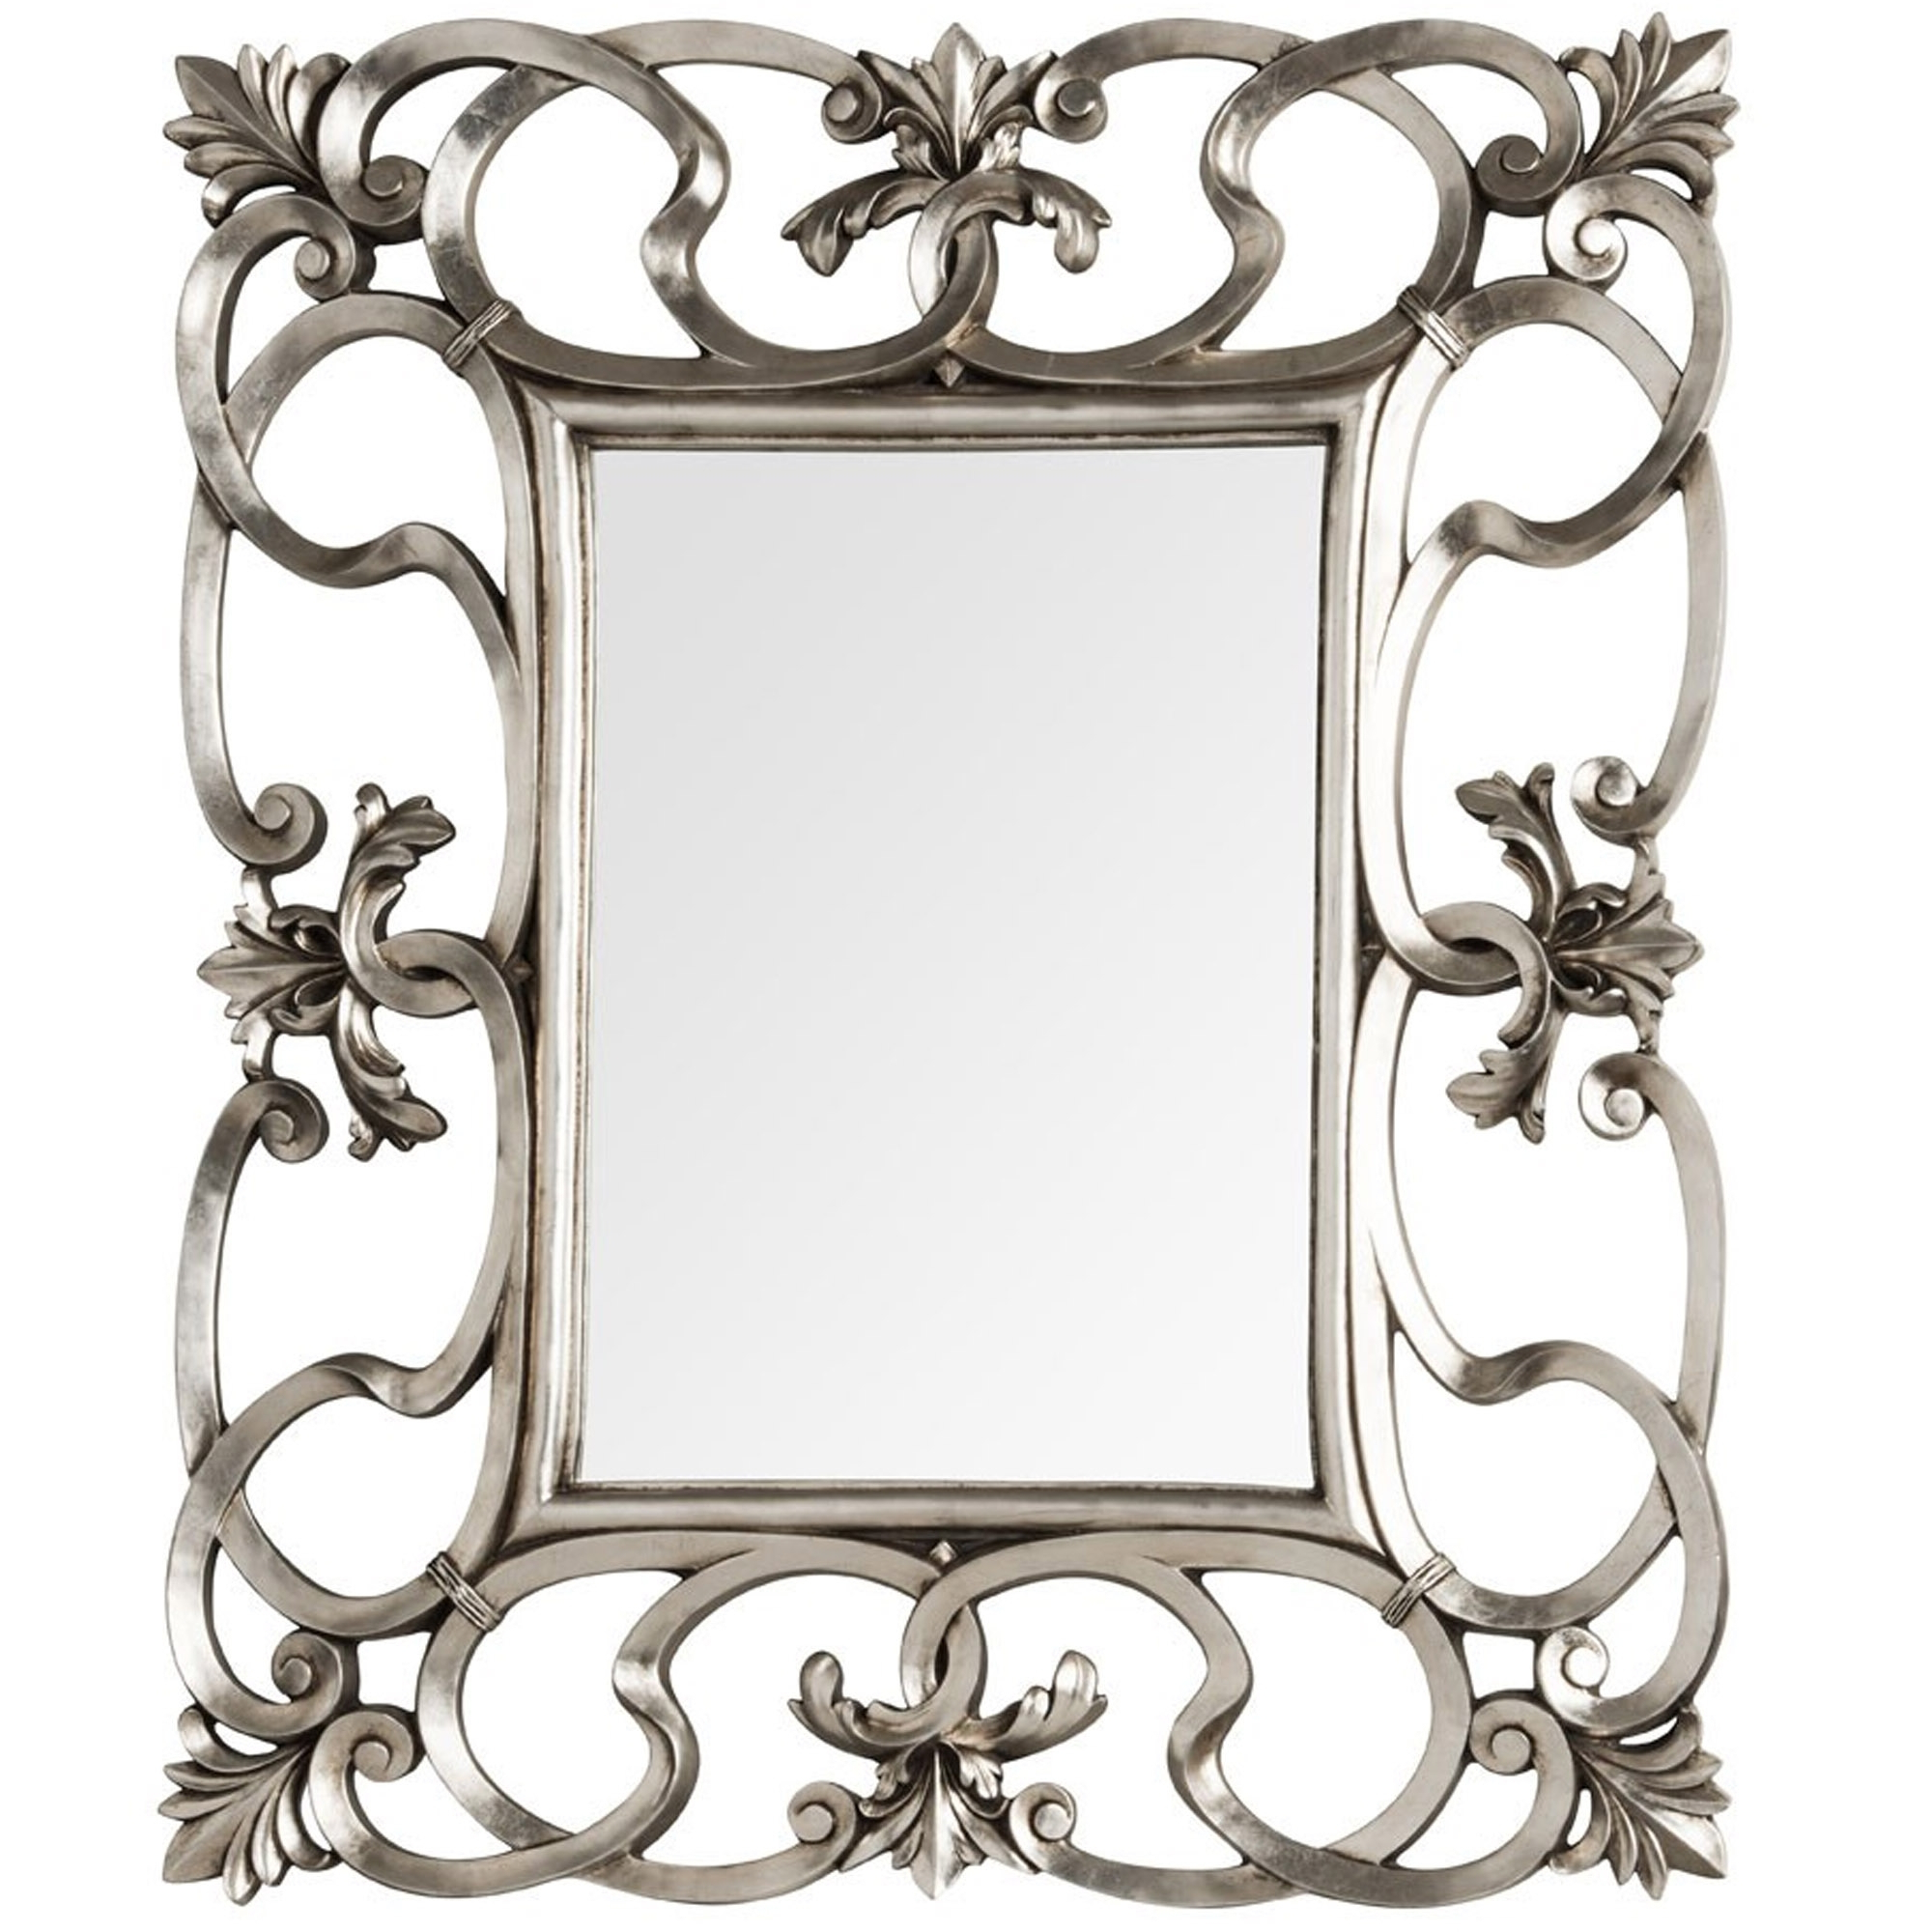 Elegant Wall Mirror For Best And Newest Elegant Wall Mirrors (Gallery 13 of 20)